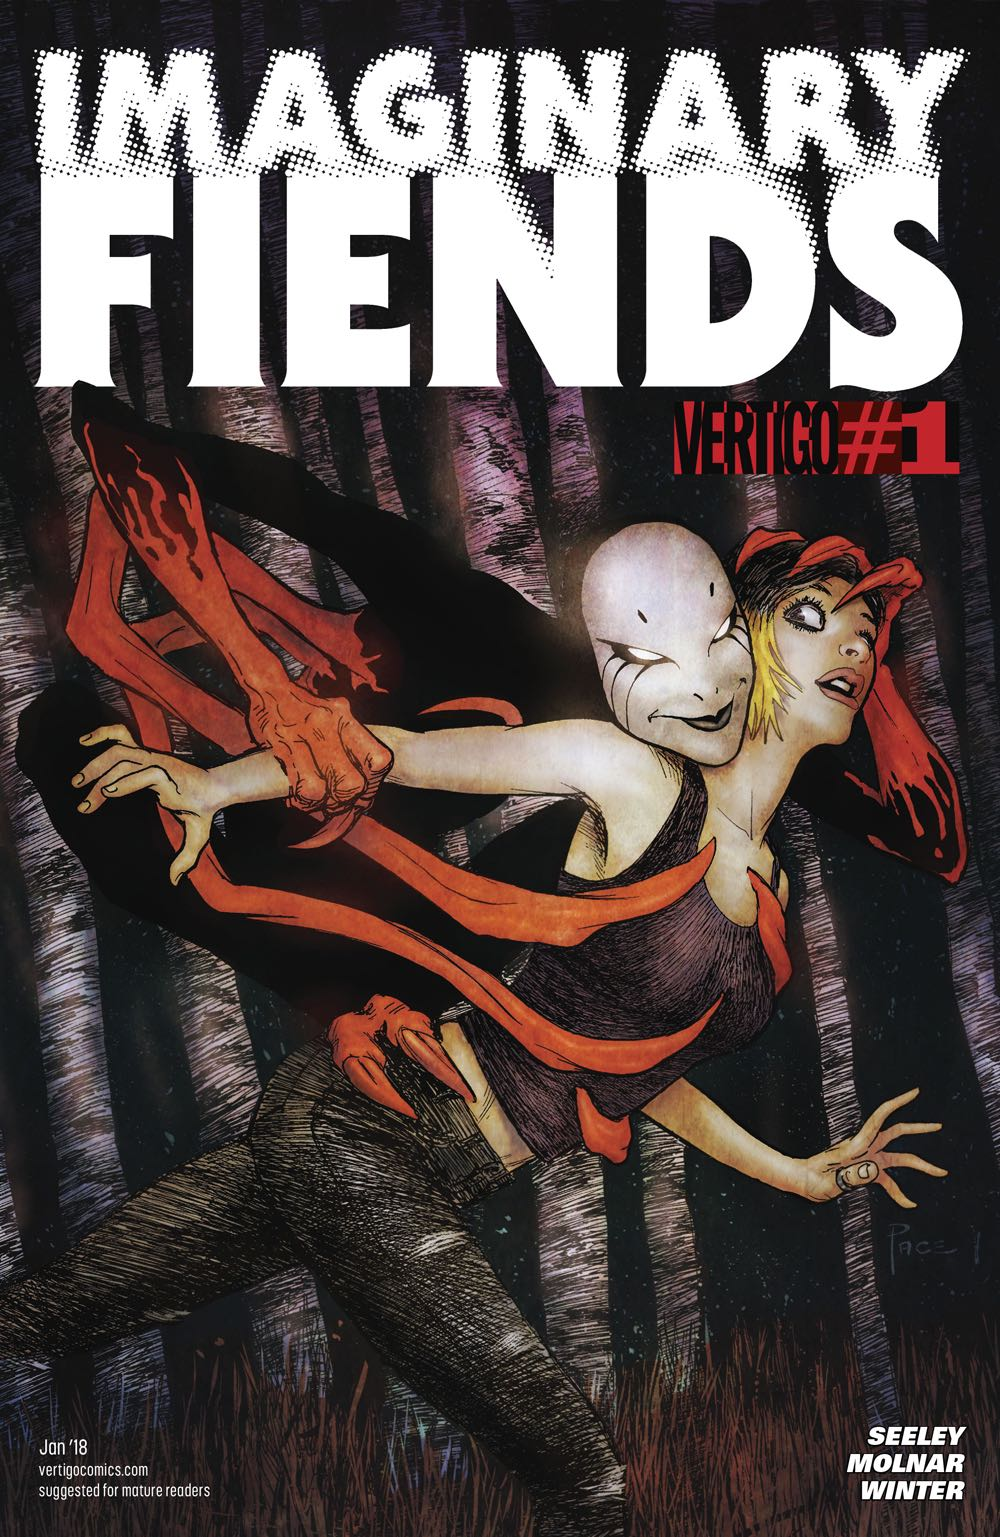 Episode 12 Cover of the Week! - (Vertigo) Imaginary Fiends #1Cover by Richard PaceWritten Tim SeeleyIllustrated by Stephen MolnarDid the Content Match the Drapes? - YES!